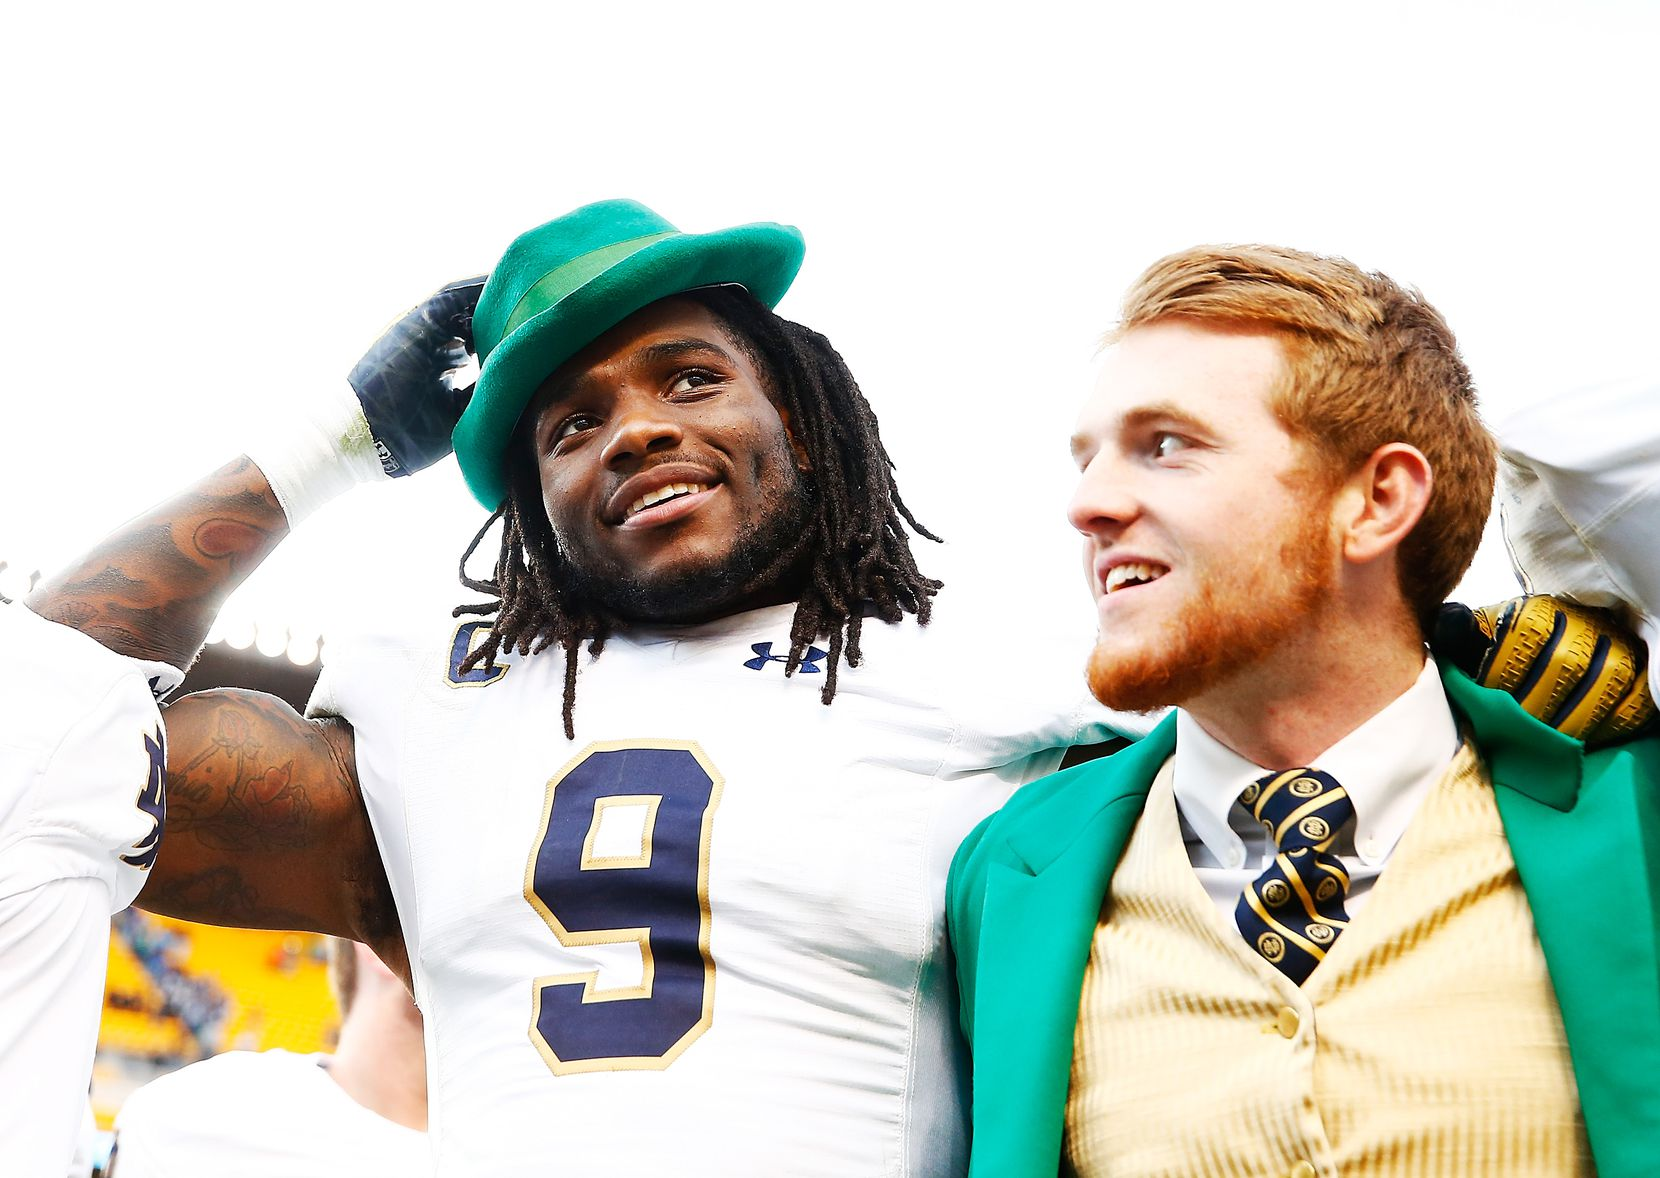 PITTSBURGH, PA - NOVEMBER 07:  Jaylon Smith #9 of the Notre Dame Fighting Irish celebrates by wearing the hat of team mascot, Lucky The Leprechaun, following their 42-30 win against the Pittsburgh Panthers at Heinz Field on November 7, 2015 in Pittsburgh, Pennsylvania.  (Photo by Jared Wickerham/Getty Images)